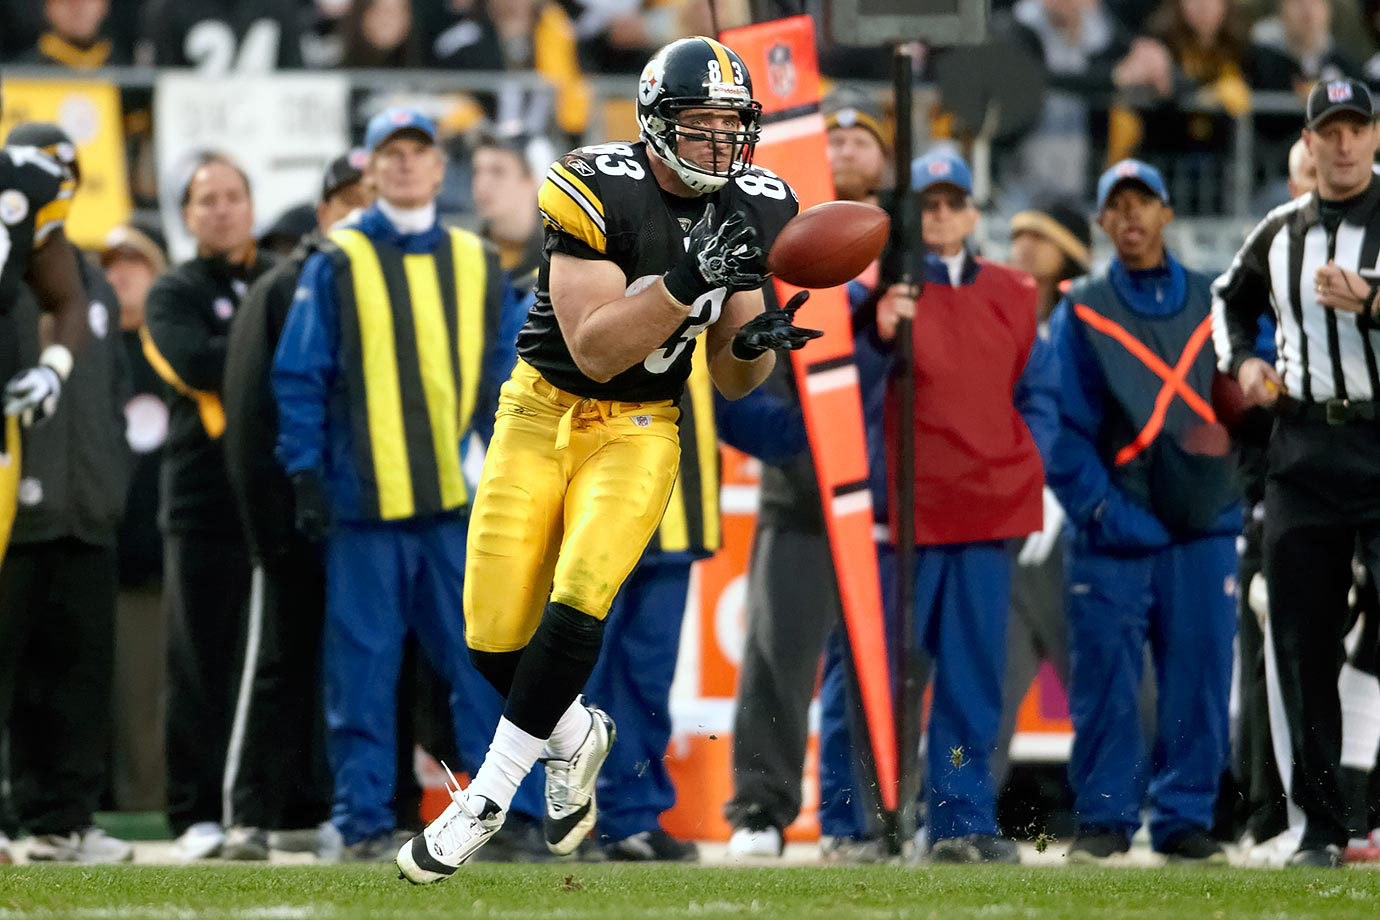 Miller played all 11 of his seasons in the NFL with the Steelers, making the Pro Bowl twice. He won Super Bowls with the team after the 2005 and 2008 seasons. The Steelers selected Miller in the first round of the 2005 NFL draft. He appeared in 168 regular season games, starting 167 of them. Miller also started in all 15 of his playoff appearances. A fan favorite, Miller retired as the Steelers all-time leader in receptions, receiving yards and receiving touchdowns by a tight end. He recorded 592 catches for 6,569 yards and 45 scores in his career. In Miller's final season, he played in 15 games, catching 60 passes for 535 yards and two touchdowns. The Steelers finished last season 10–6, losing to the eventual Super Bowl champion Denver Broncos in the divisional round of the playoffs.